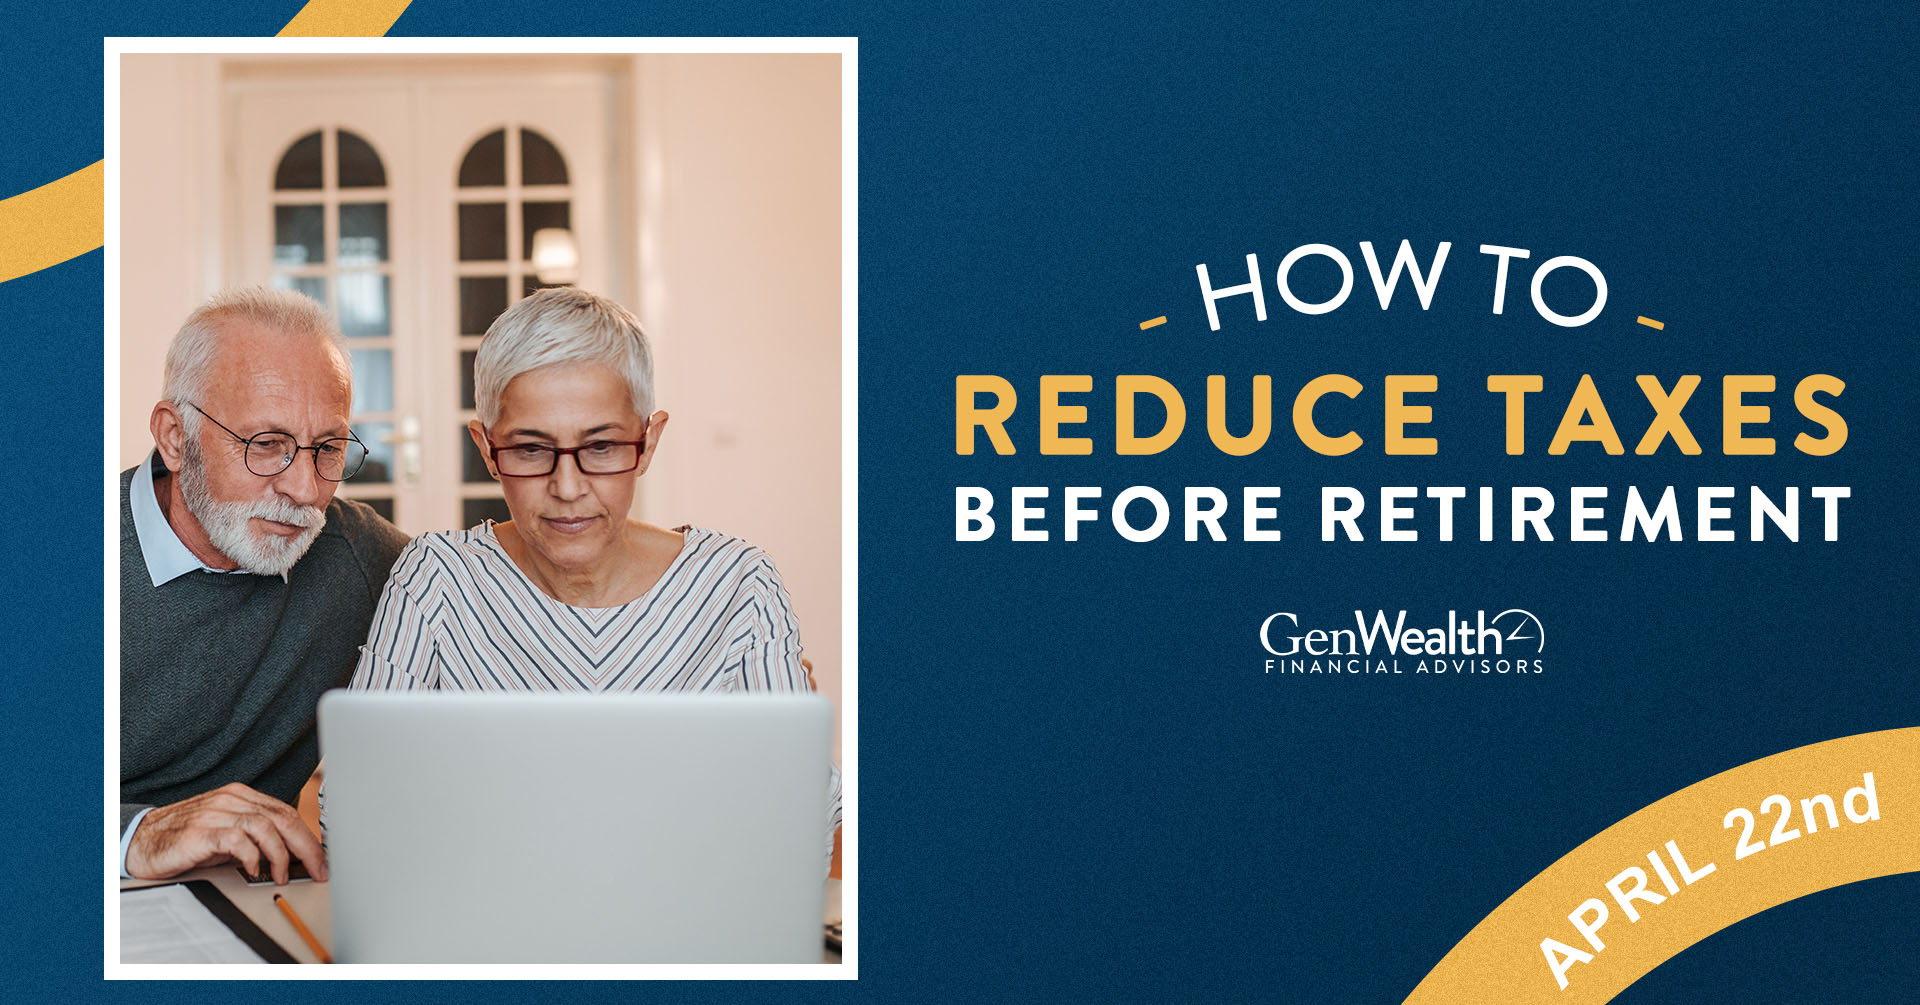 How To Reduce Taxes Before Retirement Header Image